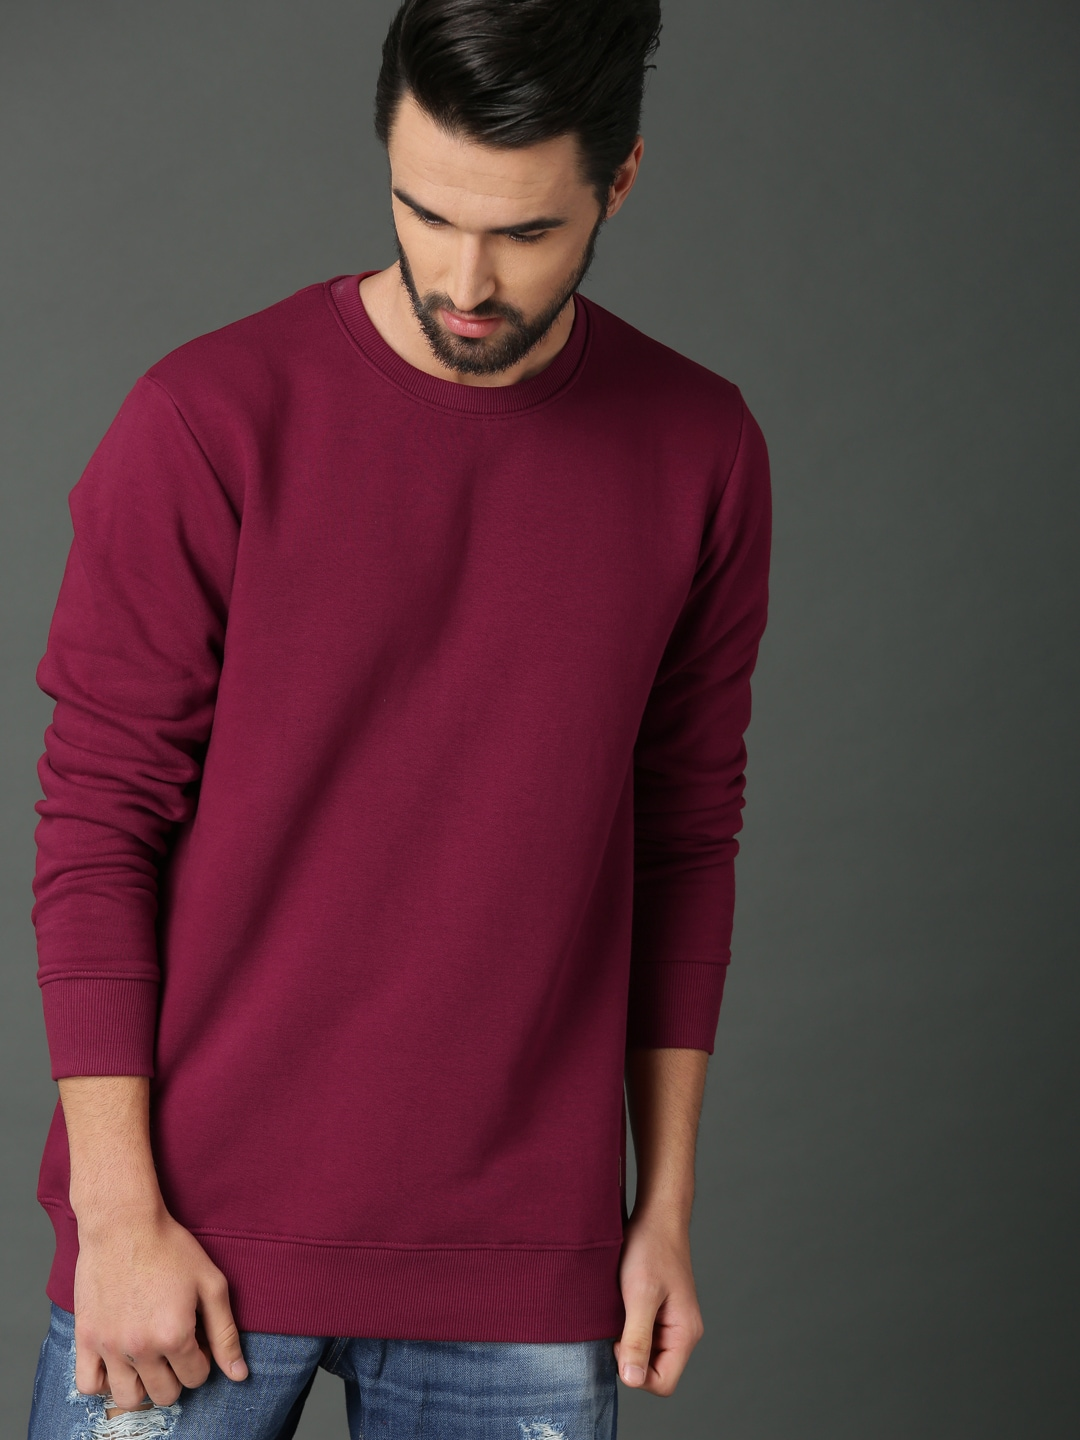 Sweatshirts For Men - Buy Mens Sweatshirts Online India b5352723b18a